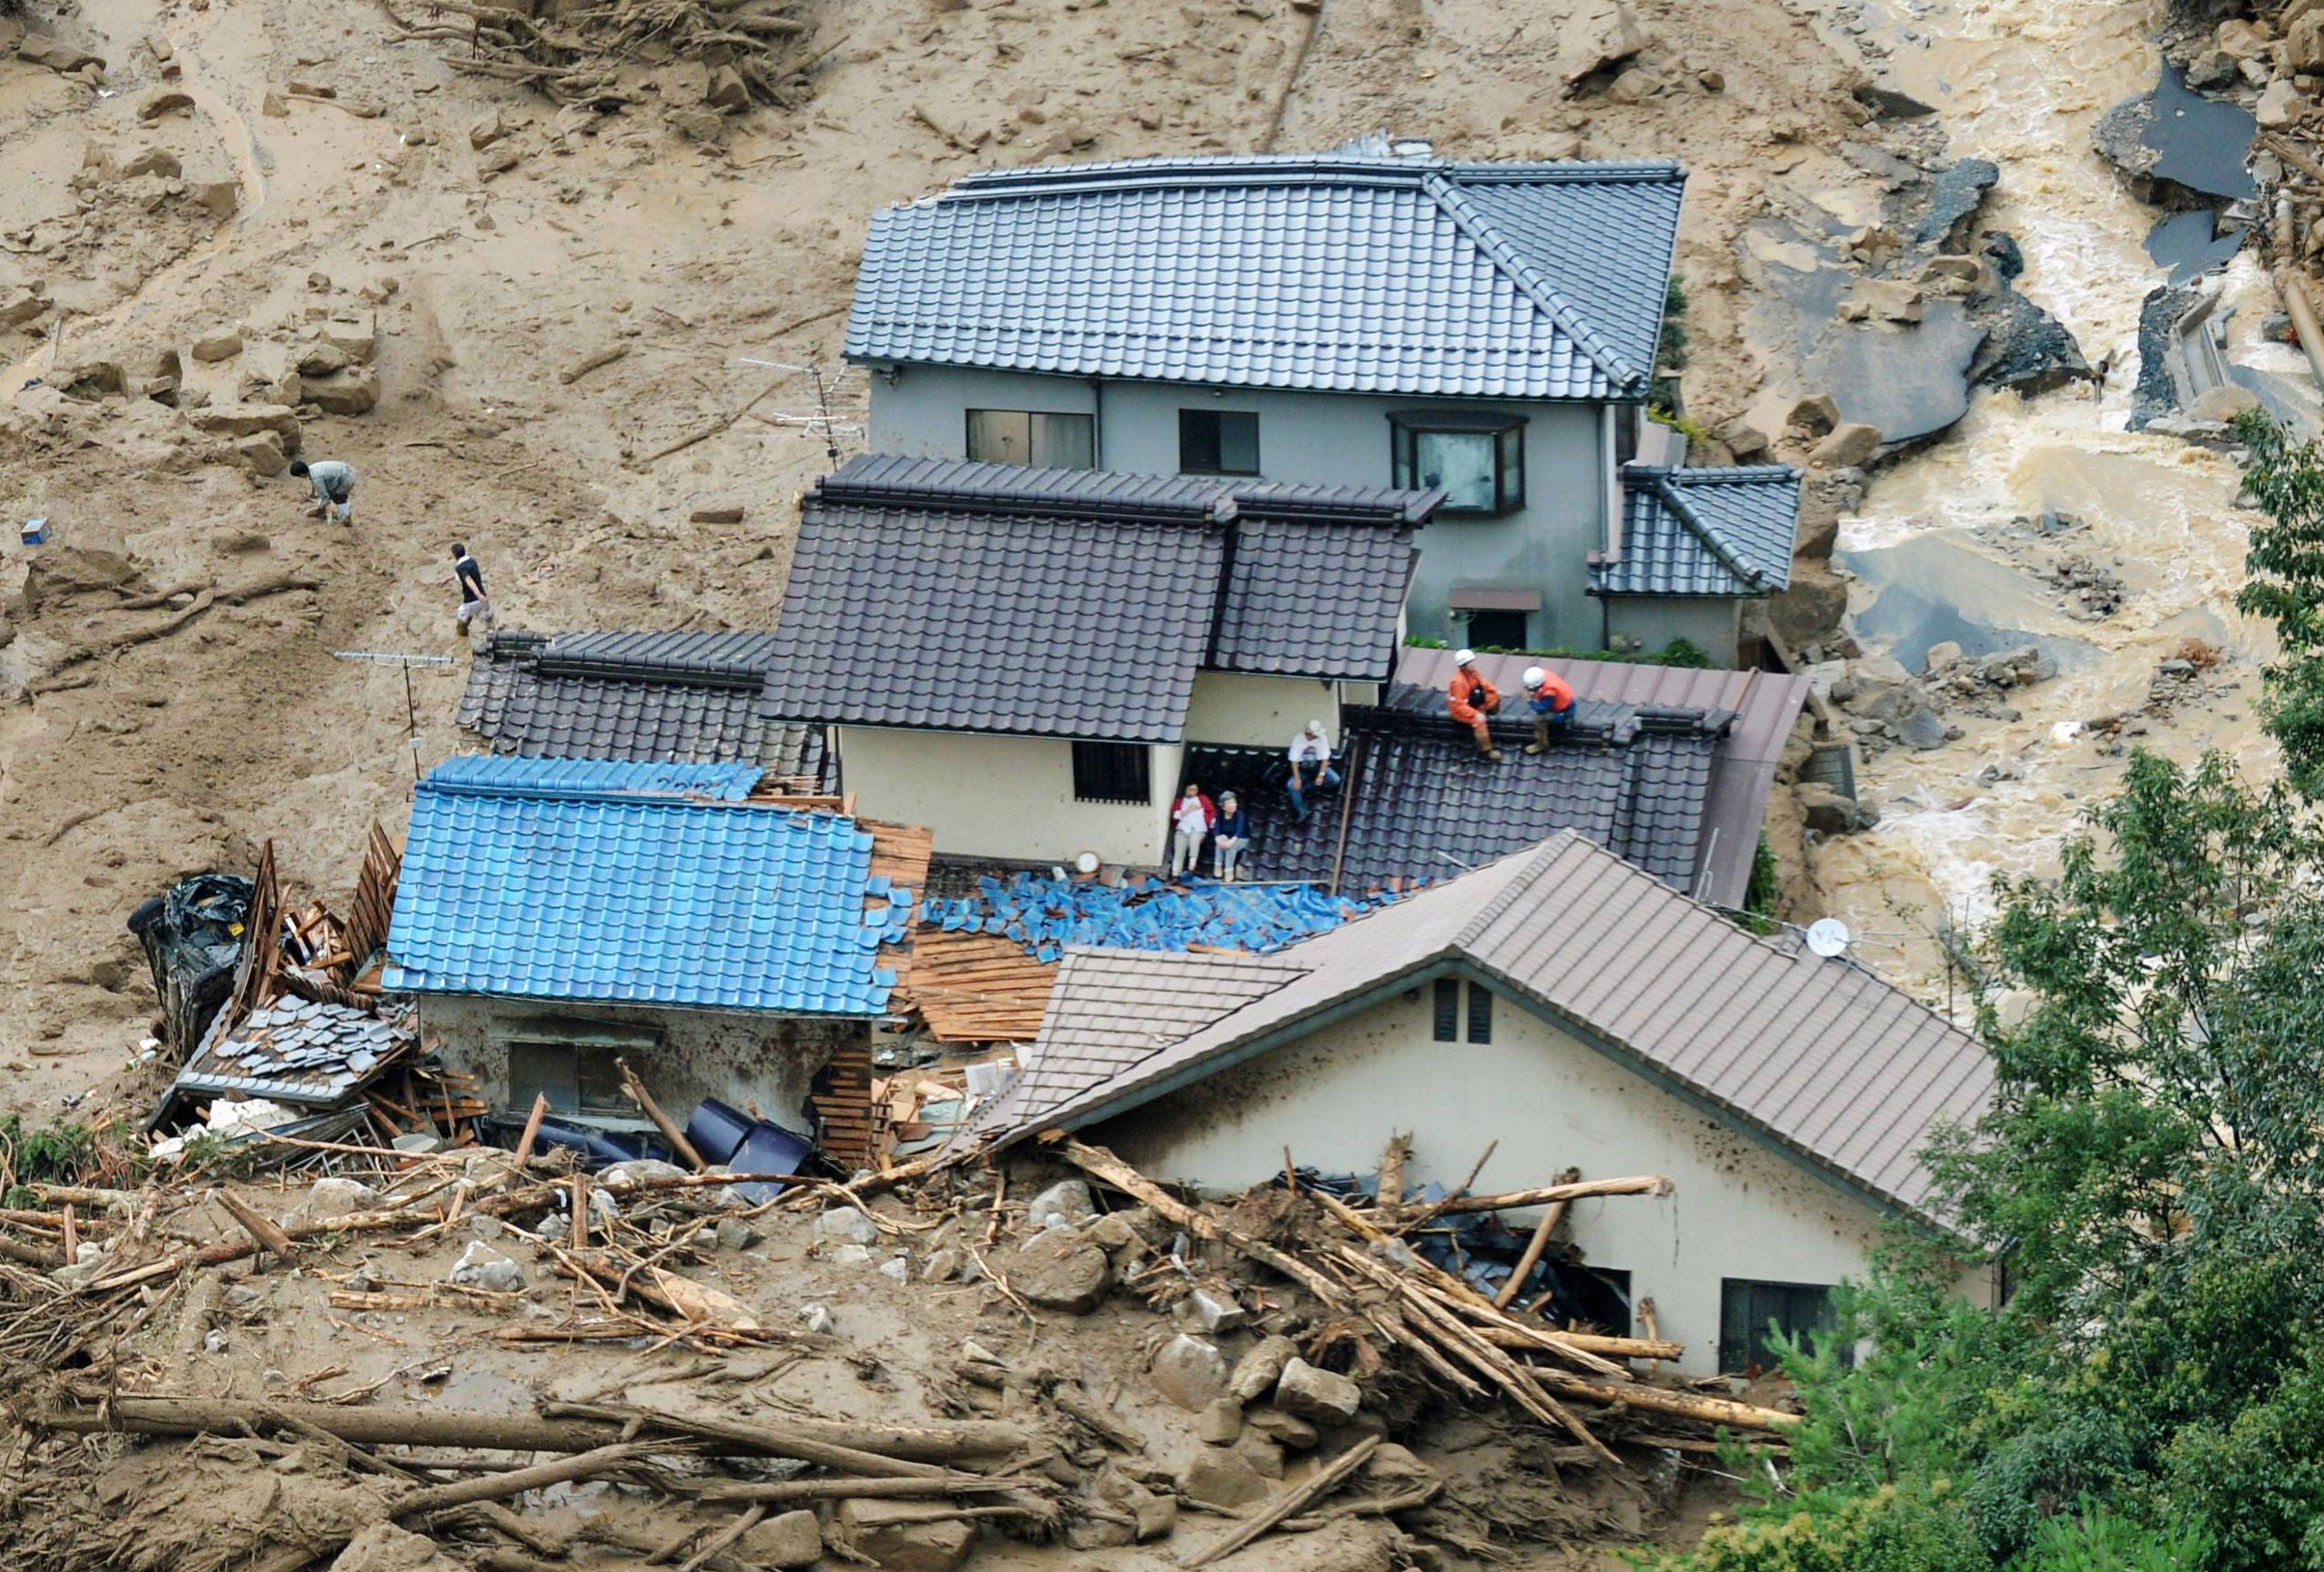 In this aerial photo, survivors and rescue workers sit on the roof of a damaged house after a massive landslide swept through residential areas in Hiroshima, western Japan, Wednesday, Aug. 20, 2014.